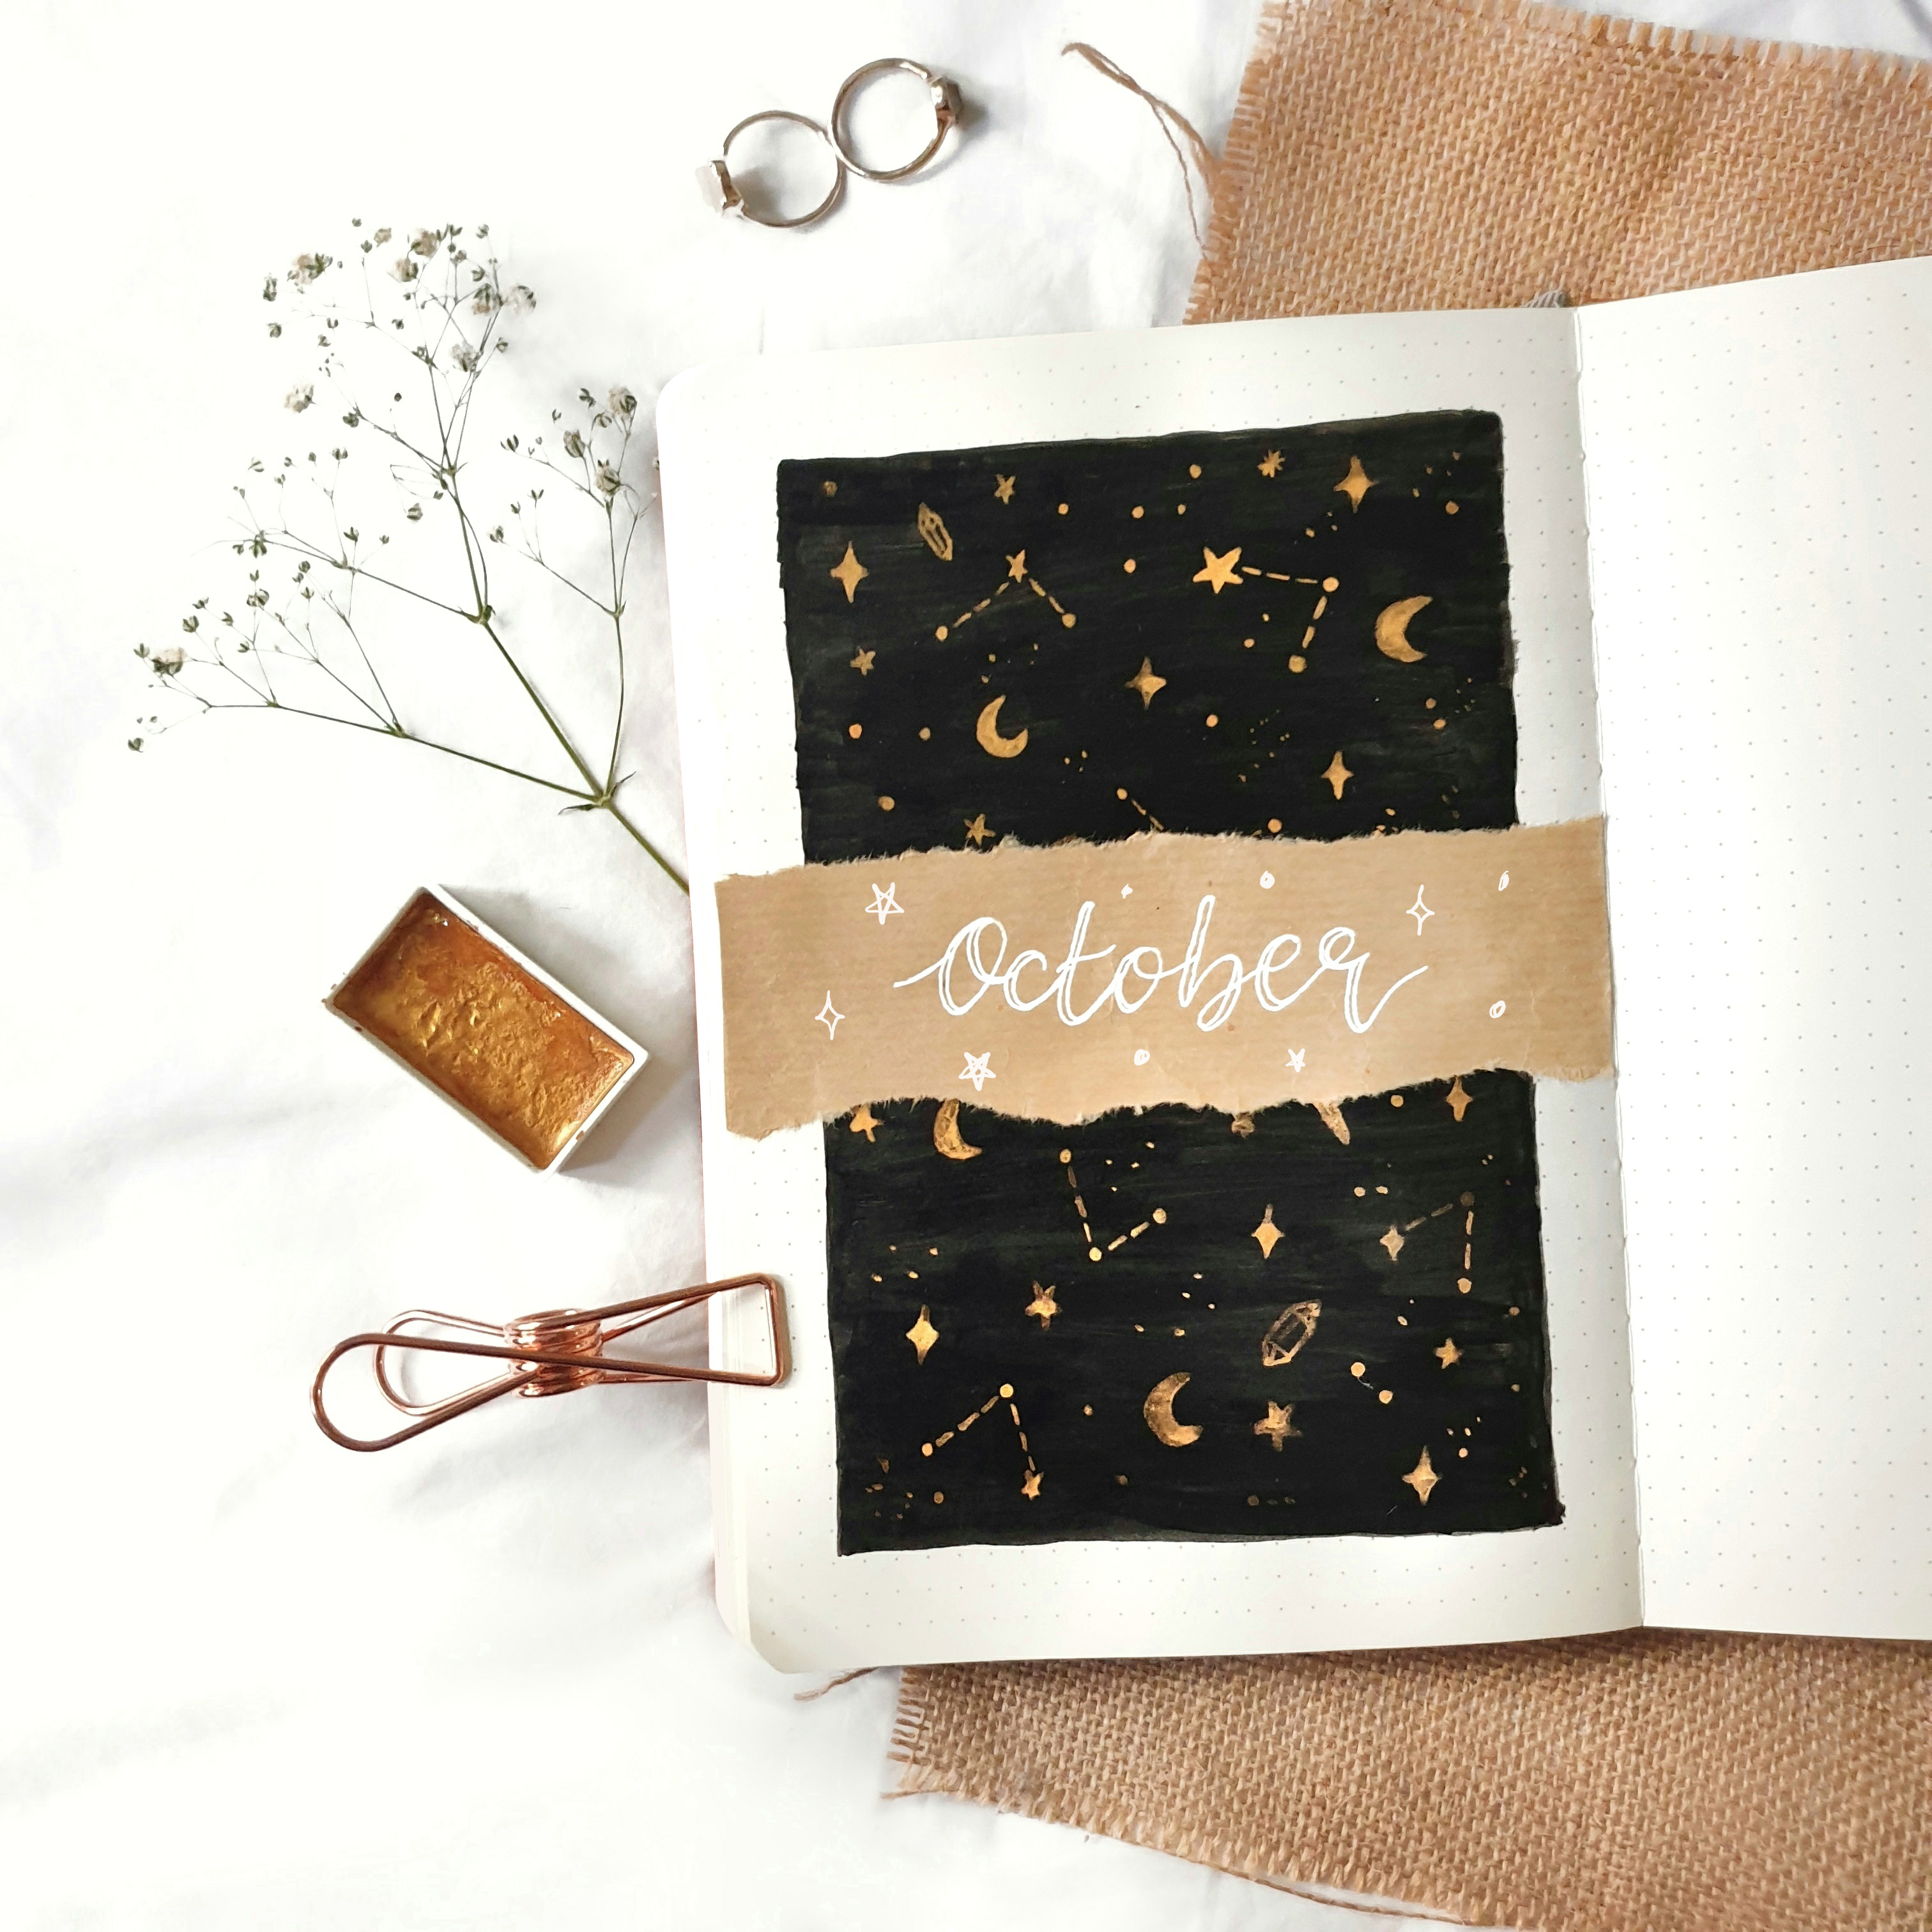 How To Magical October Cover Page Bullet Journal Inspiration Bullet Journal Aesthetic Bullet Journal Themes